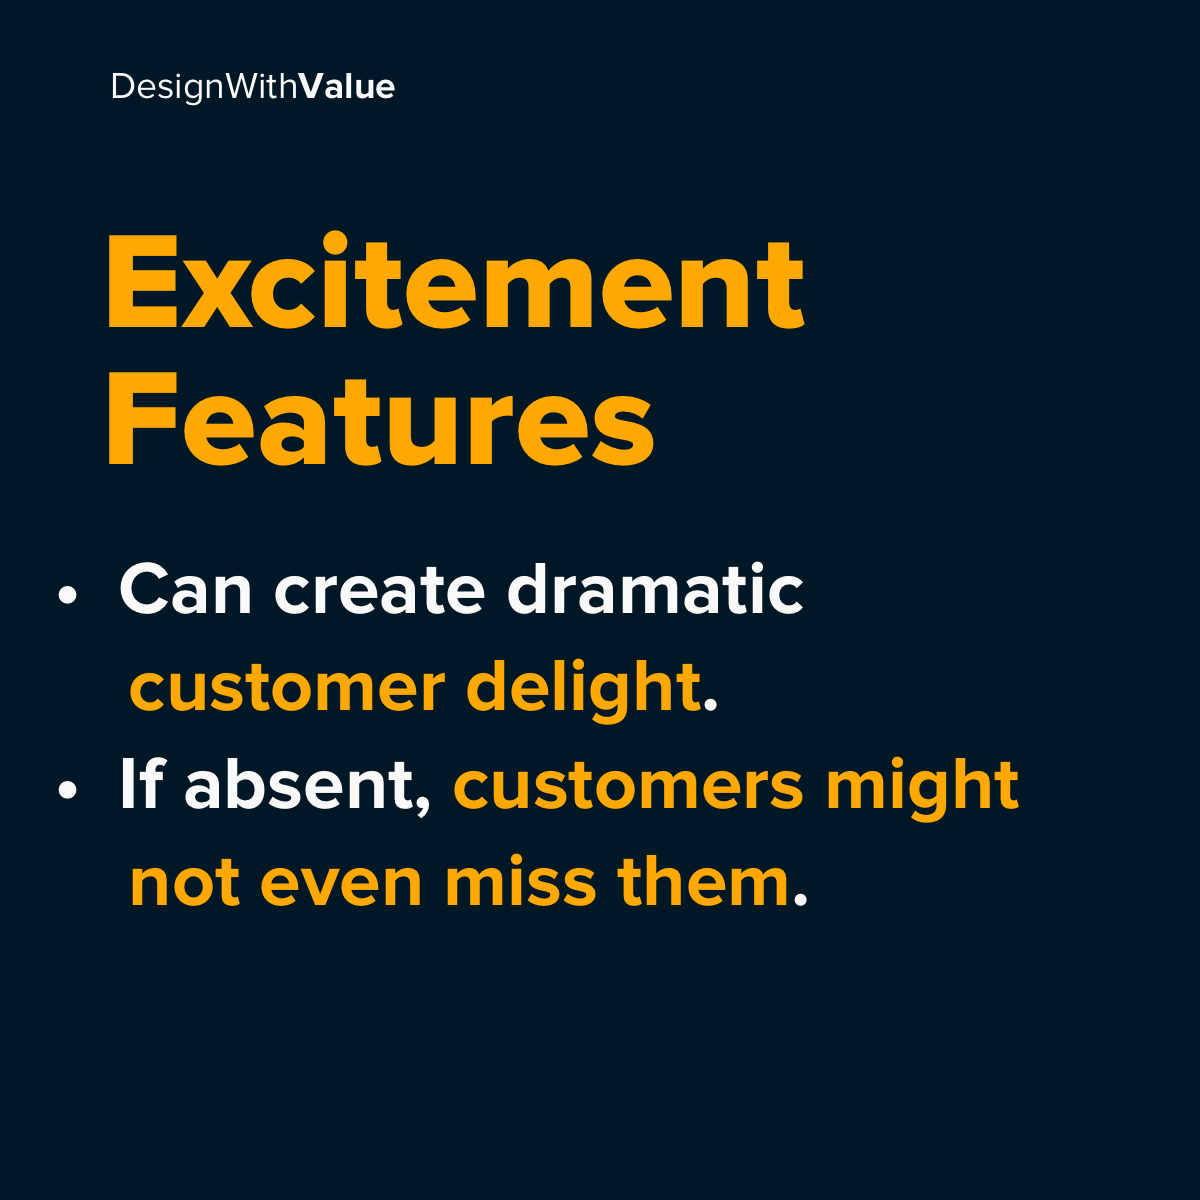 Excitement features: Can create dramatic customer delight. Might not even be missed if they are absent.